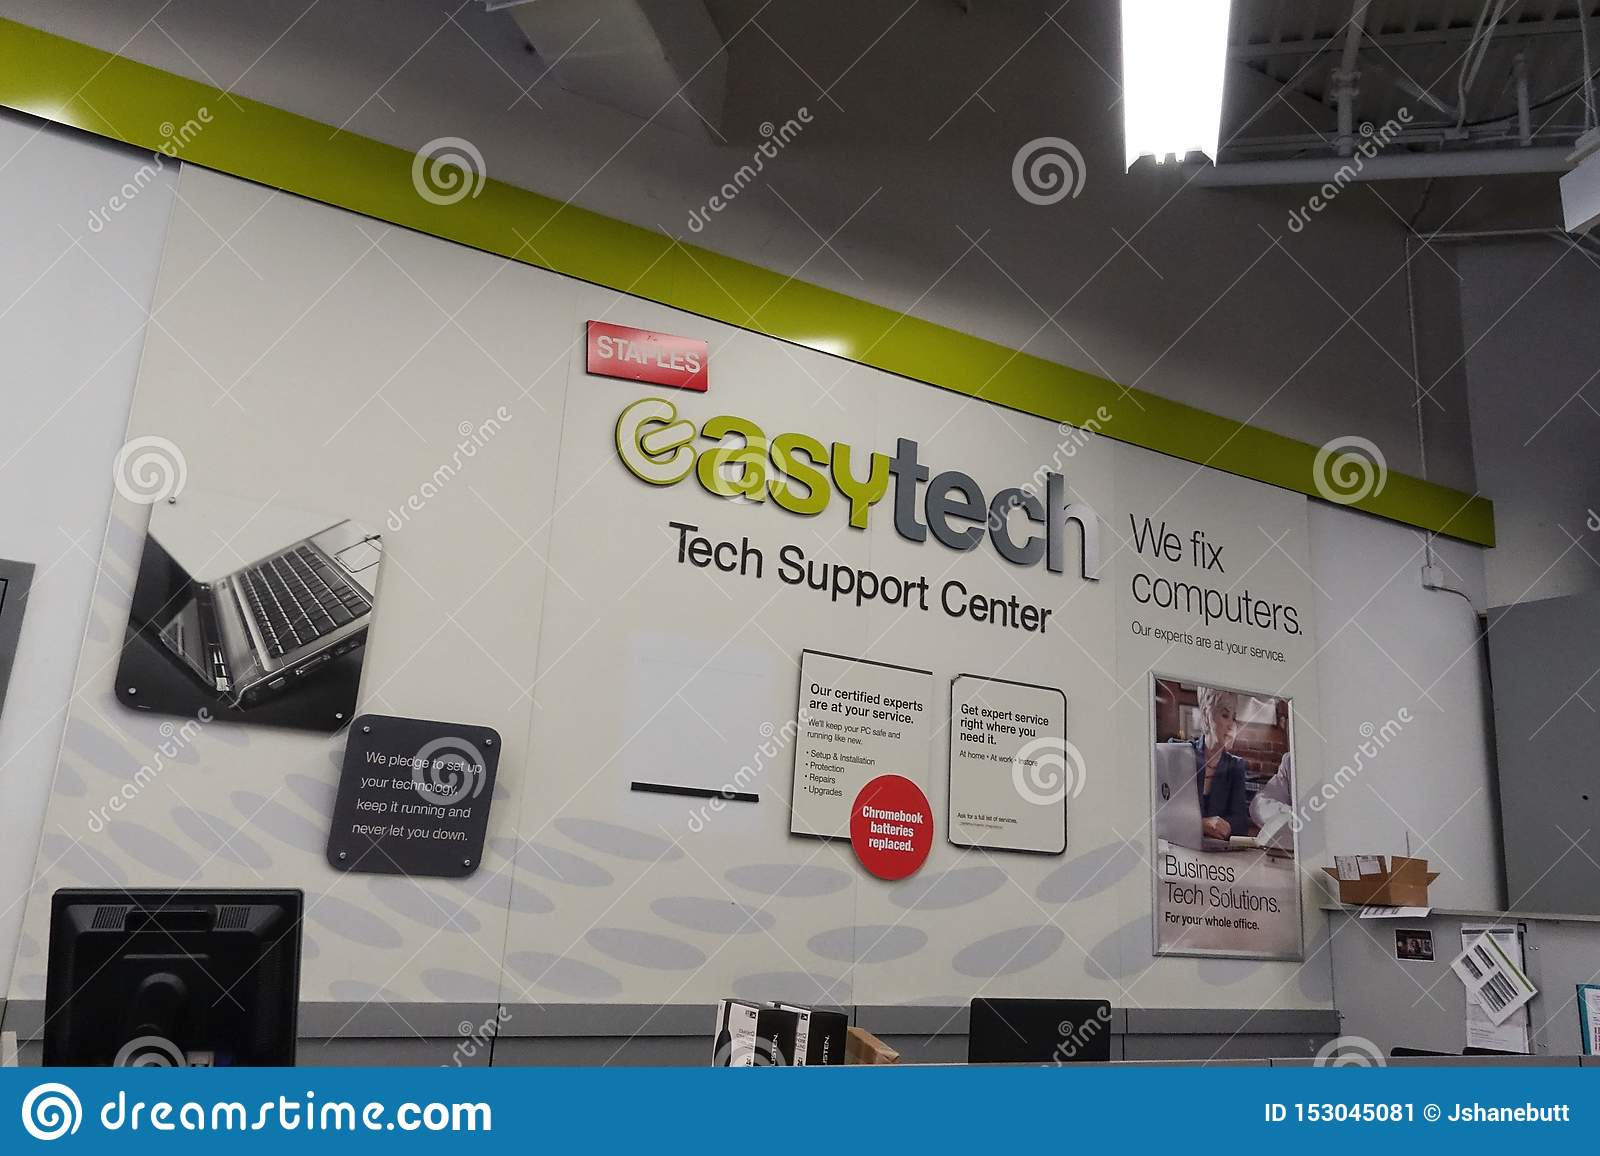 Easy Tech department at Staples